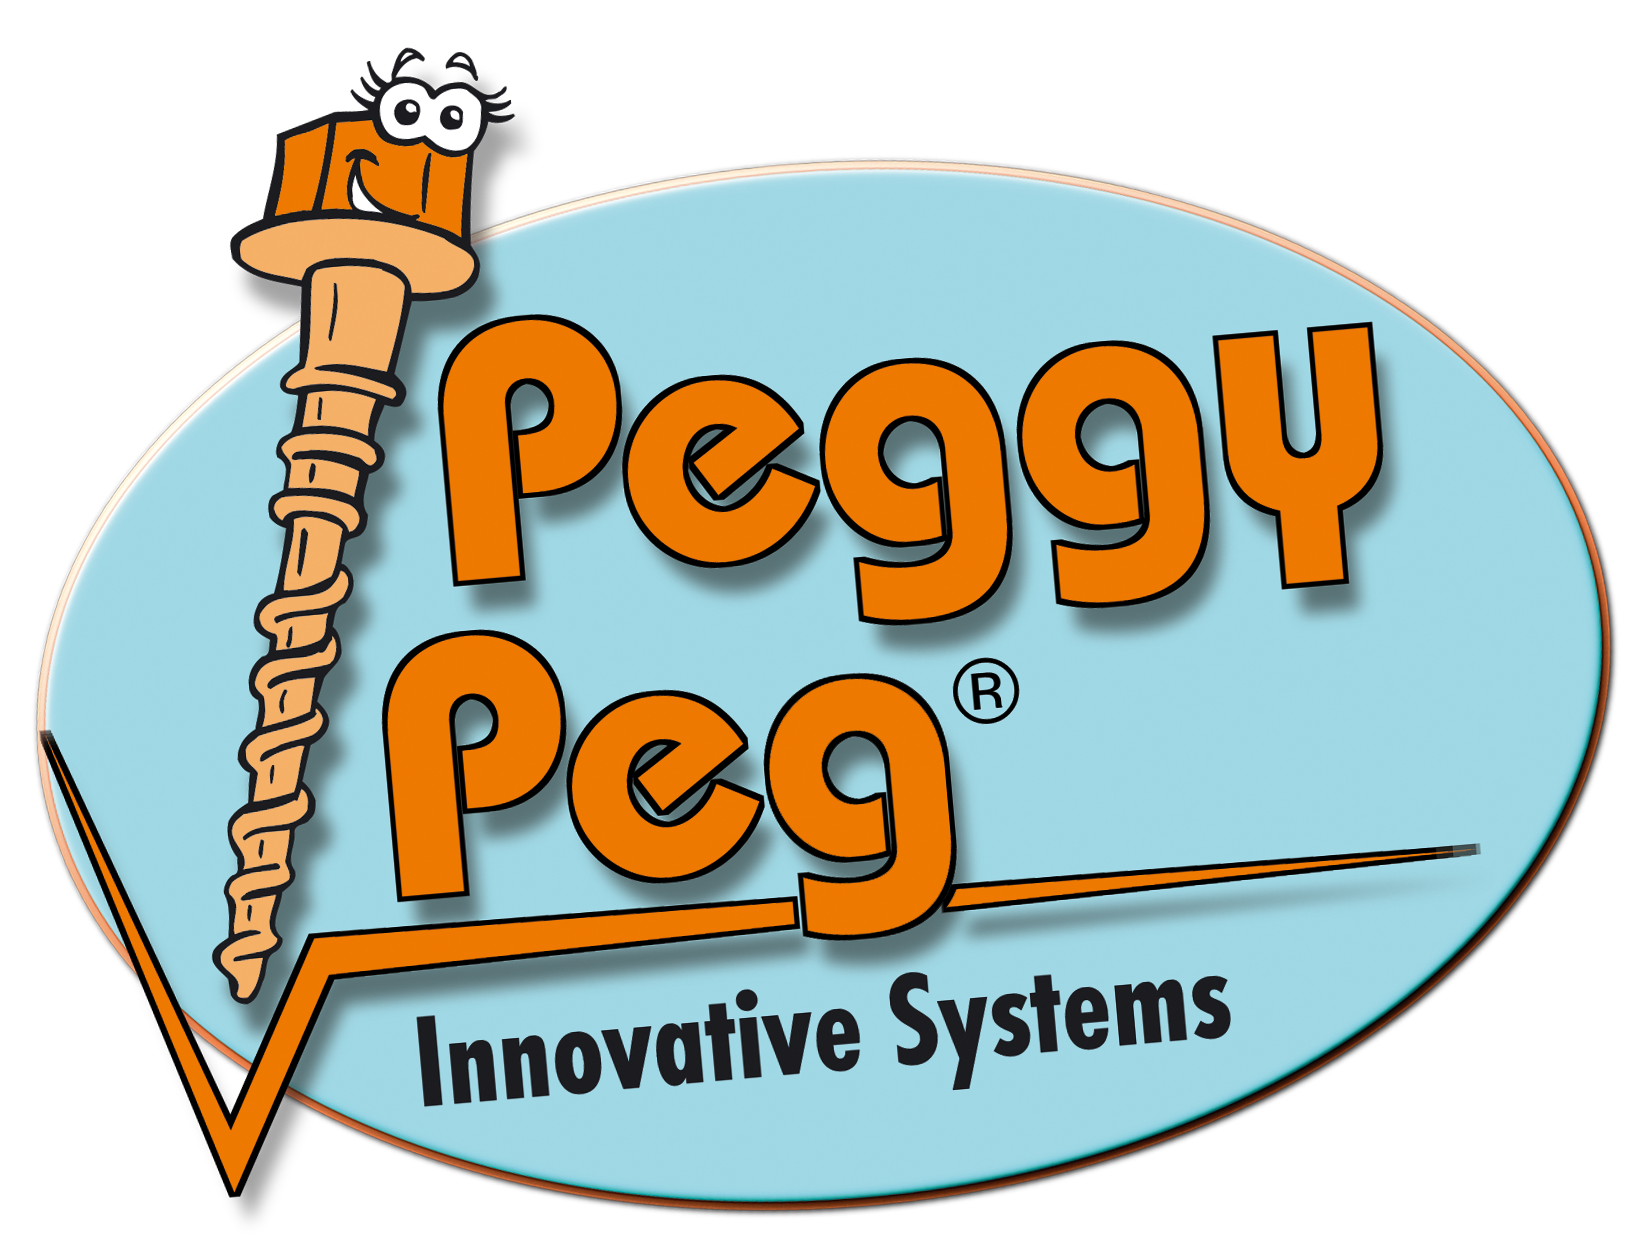 Peggy Peg EN